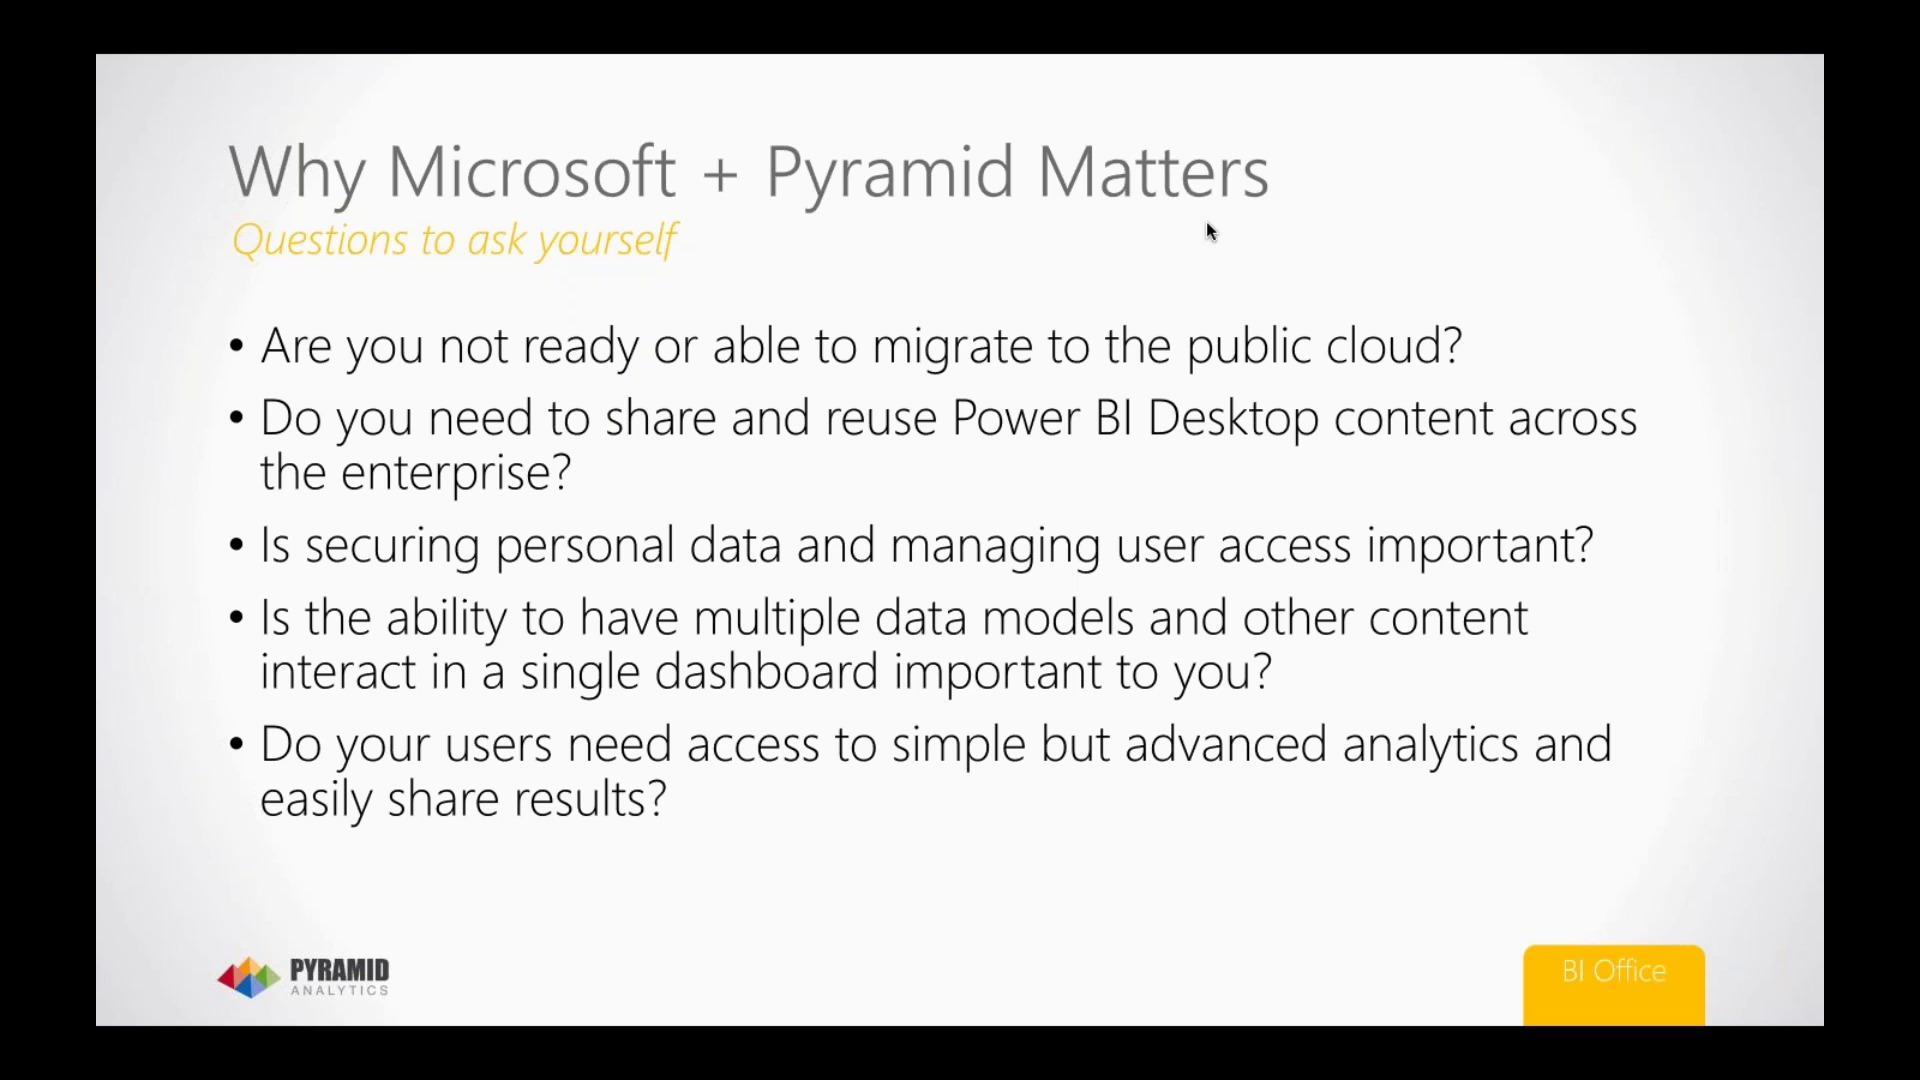 On-Premise Business Intelligence for Power BI from Pyramid Analytics